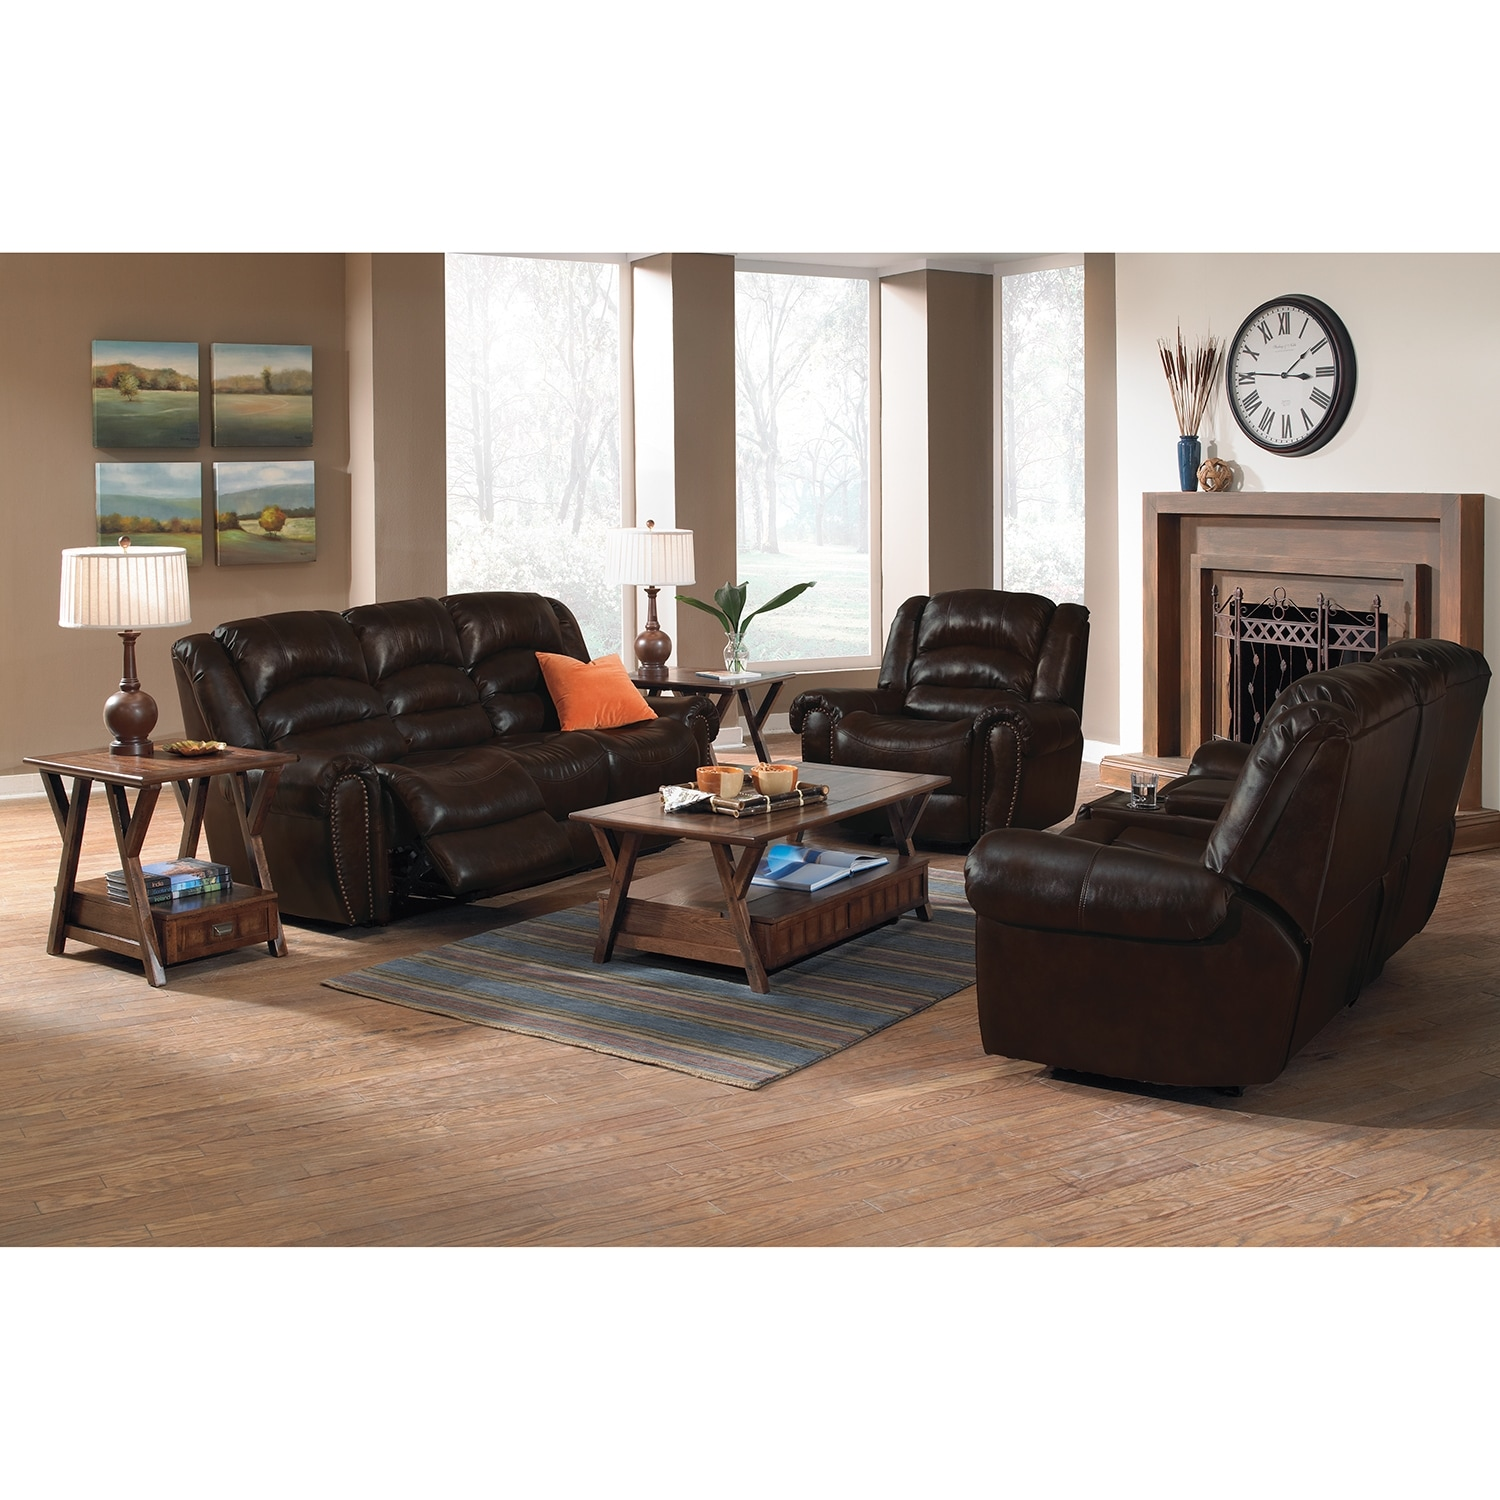 Document moved Reclining living room furniture